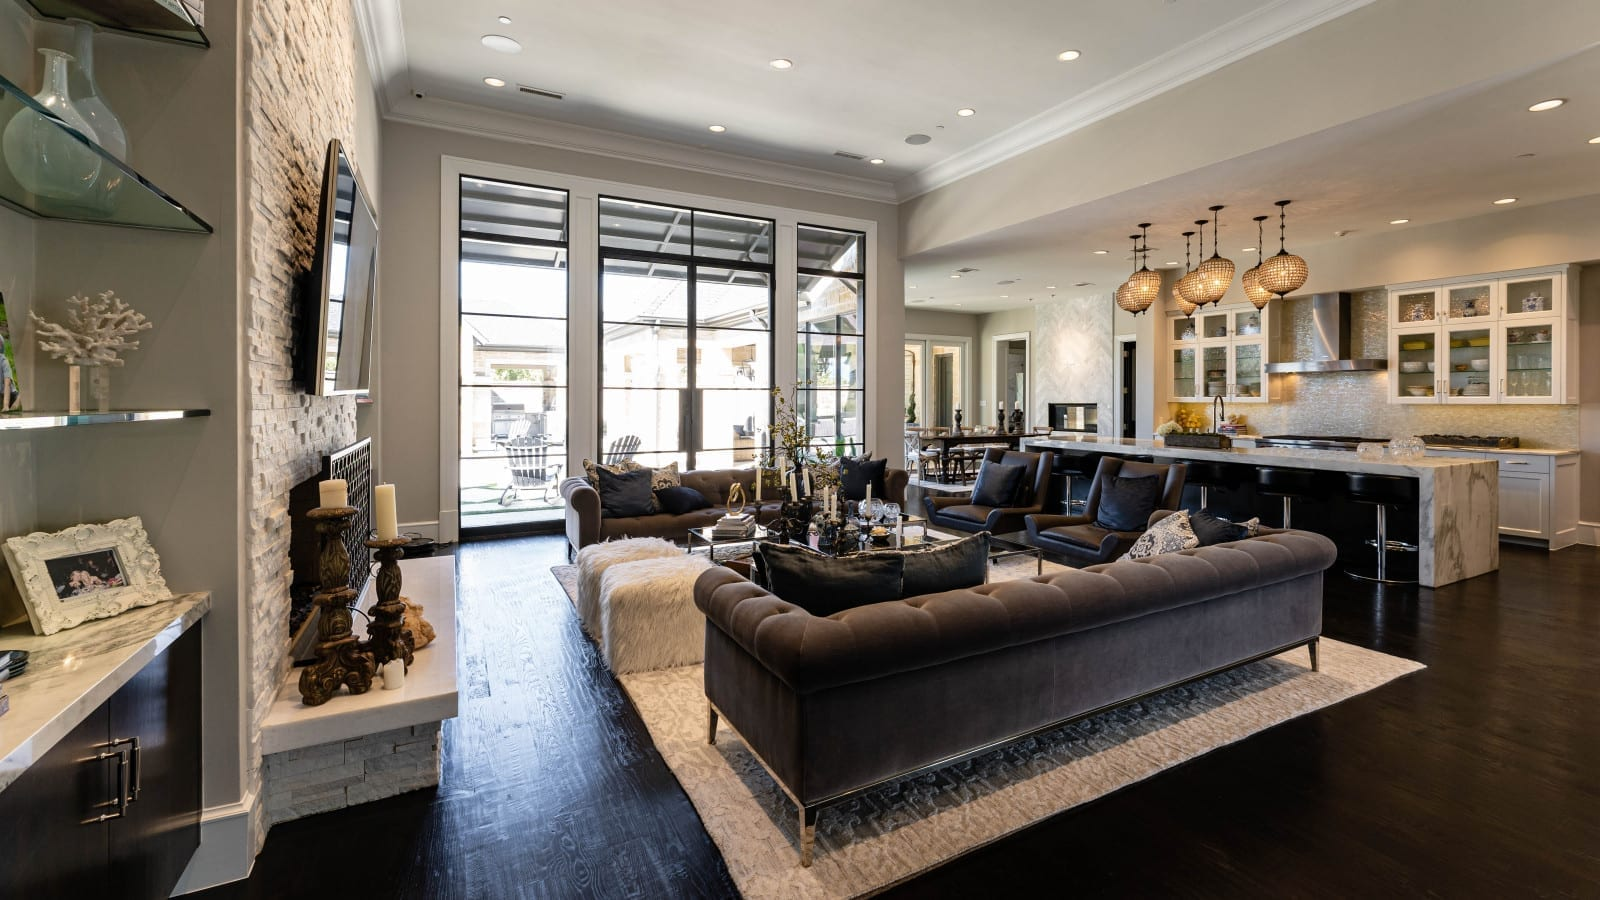 transitional modern style home designed by home builders in Dallas Texas 7 - Millennial Design + Build